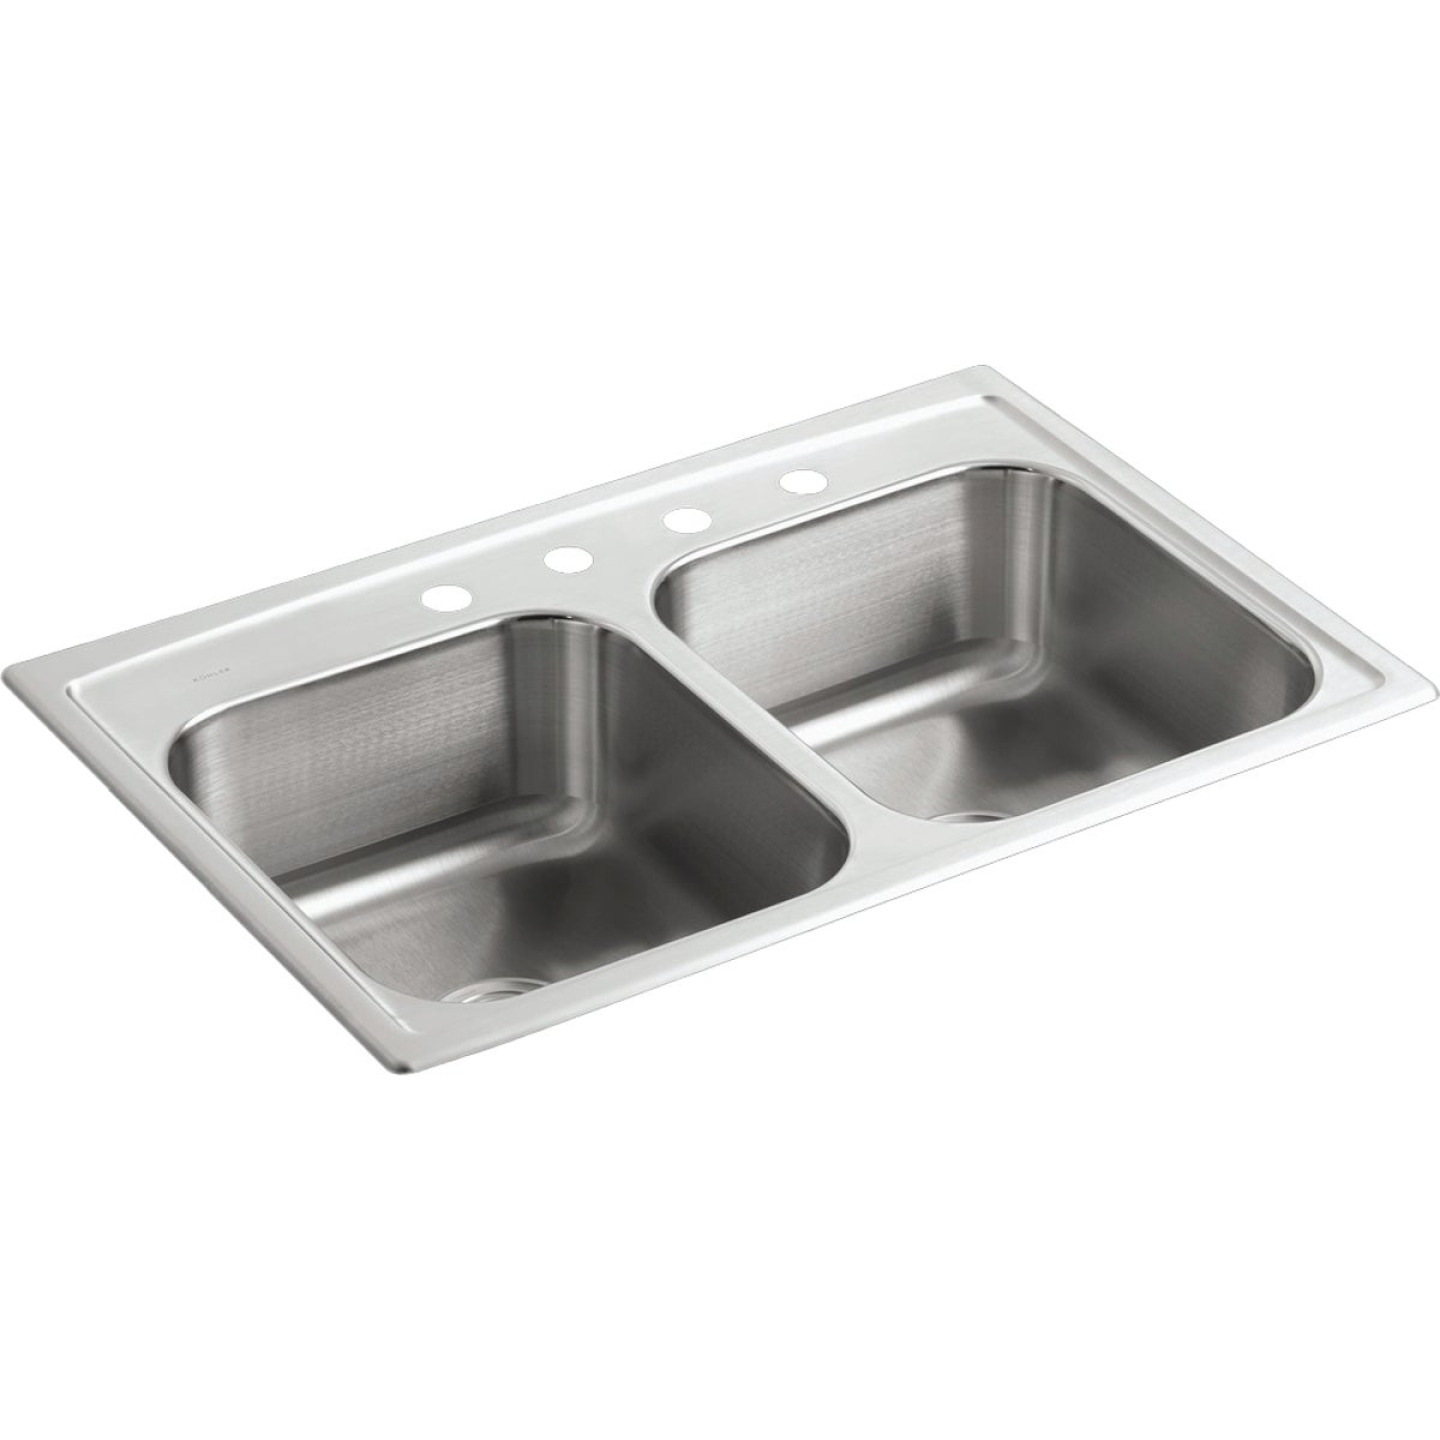 Kohler Toccata Double Bowl 33 In. x 22 In. x 8 In. Deep Stainless Steel Kitchen Sink Image 1